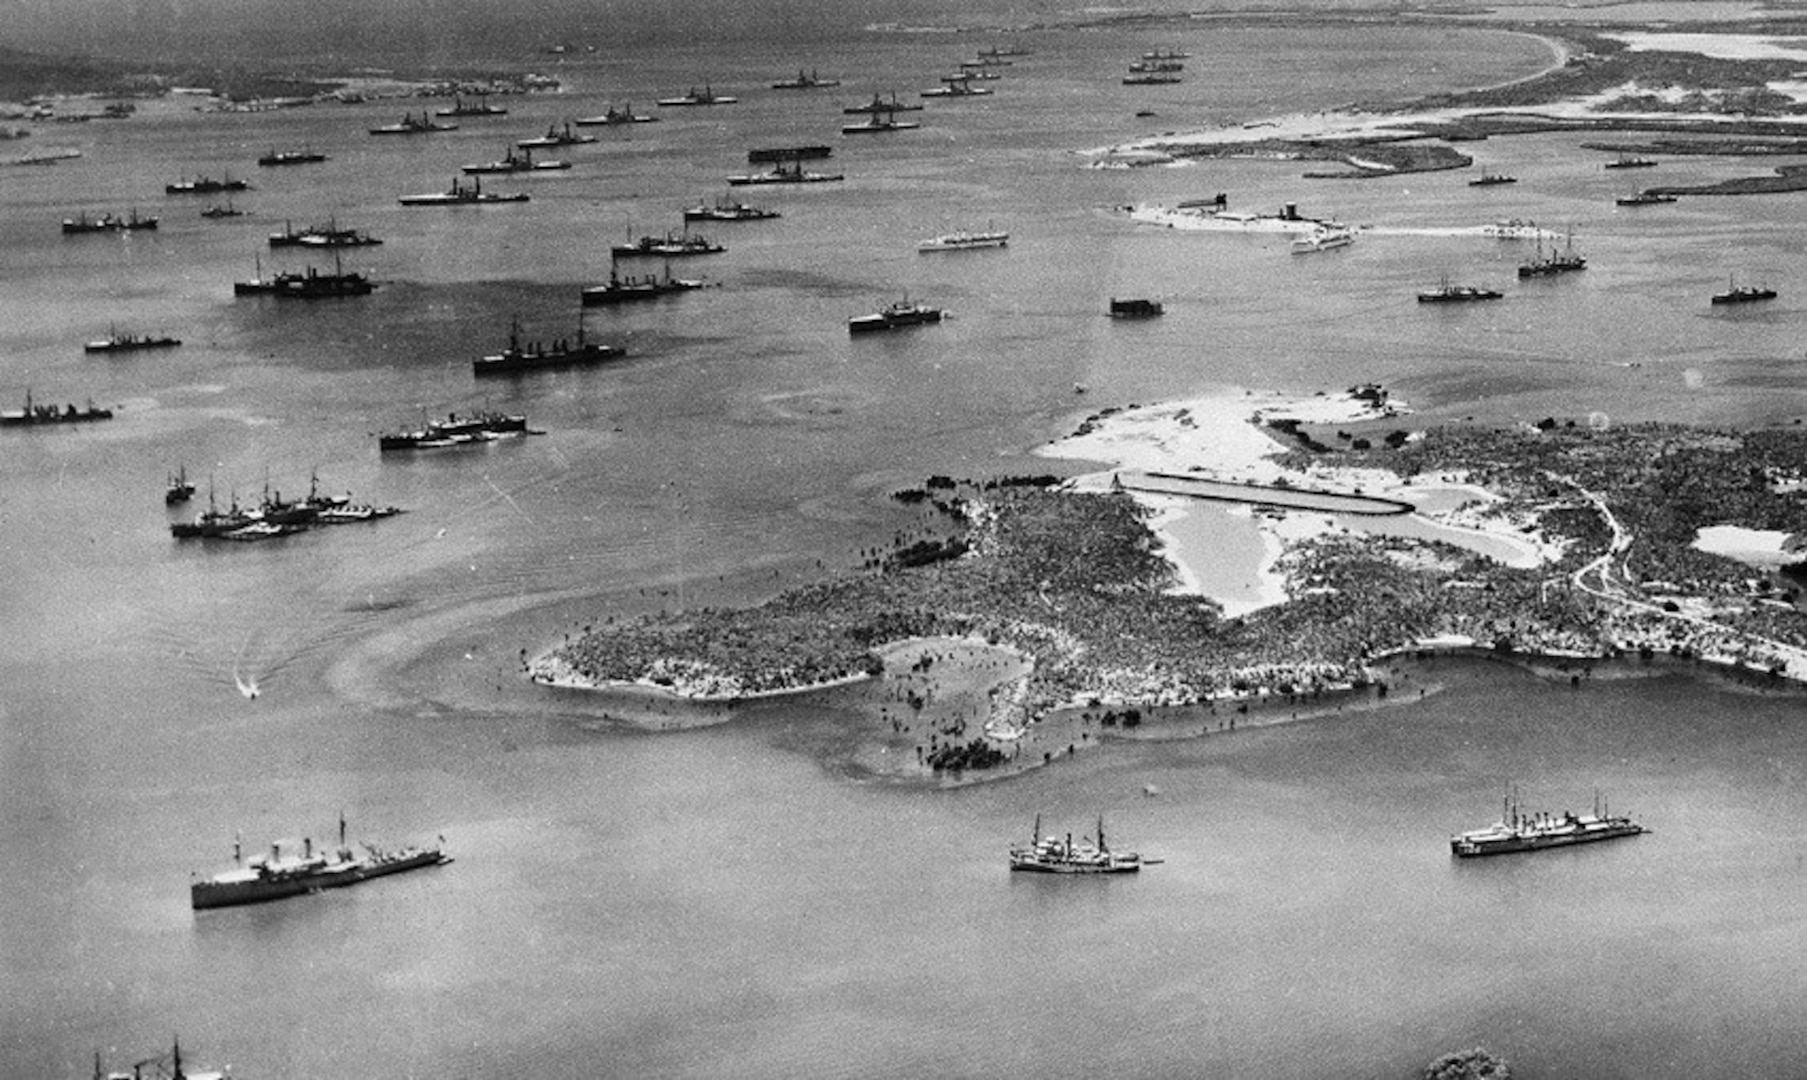 Aerial photo of Guantanamo Bay Naval Station in early 1940s, showing the fleet at anchor and seaplane ramp in the foreground. (U.S. Navy photo)